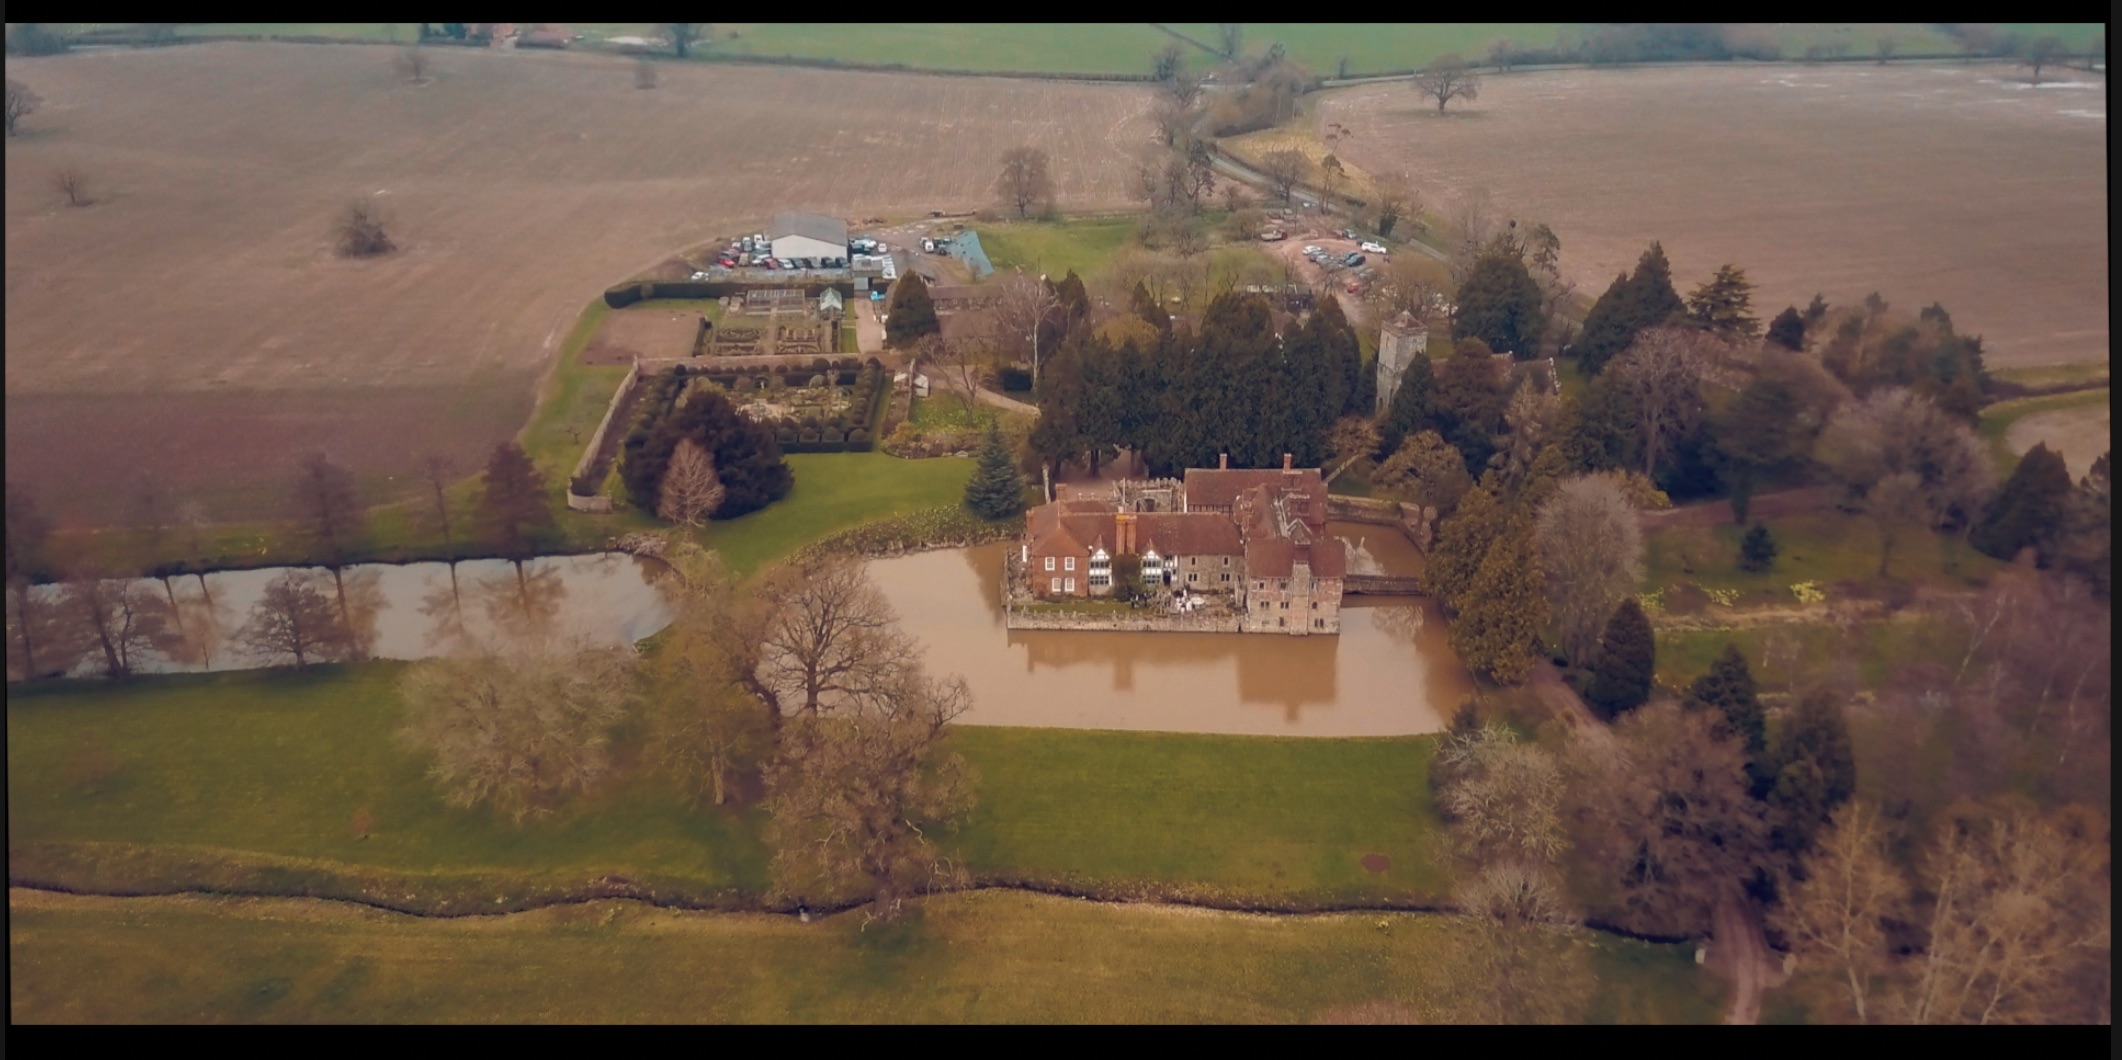 A view from our drone of Britsmorton Court